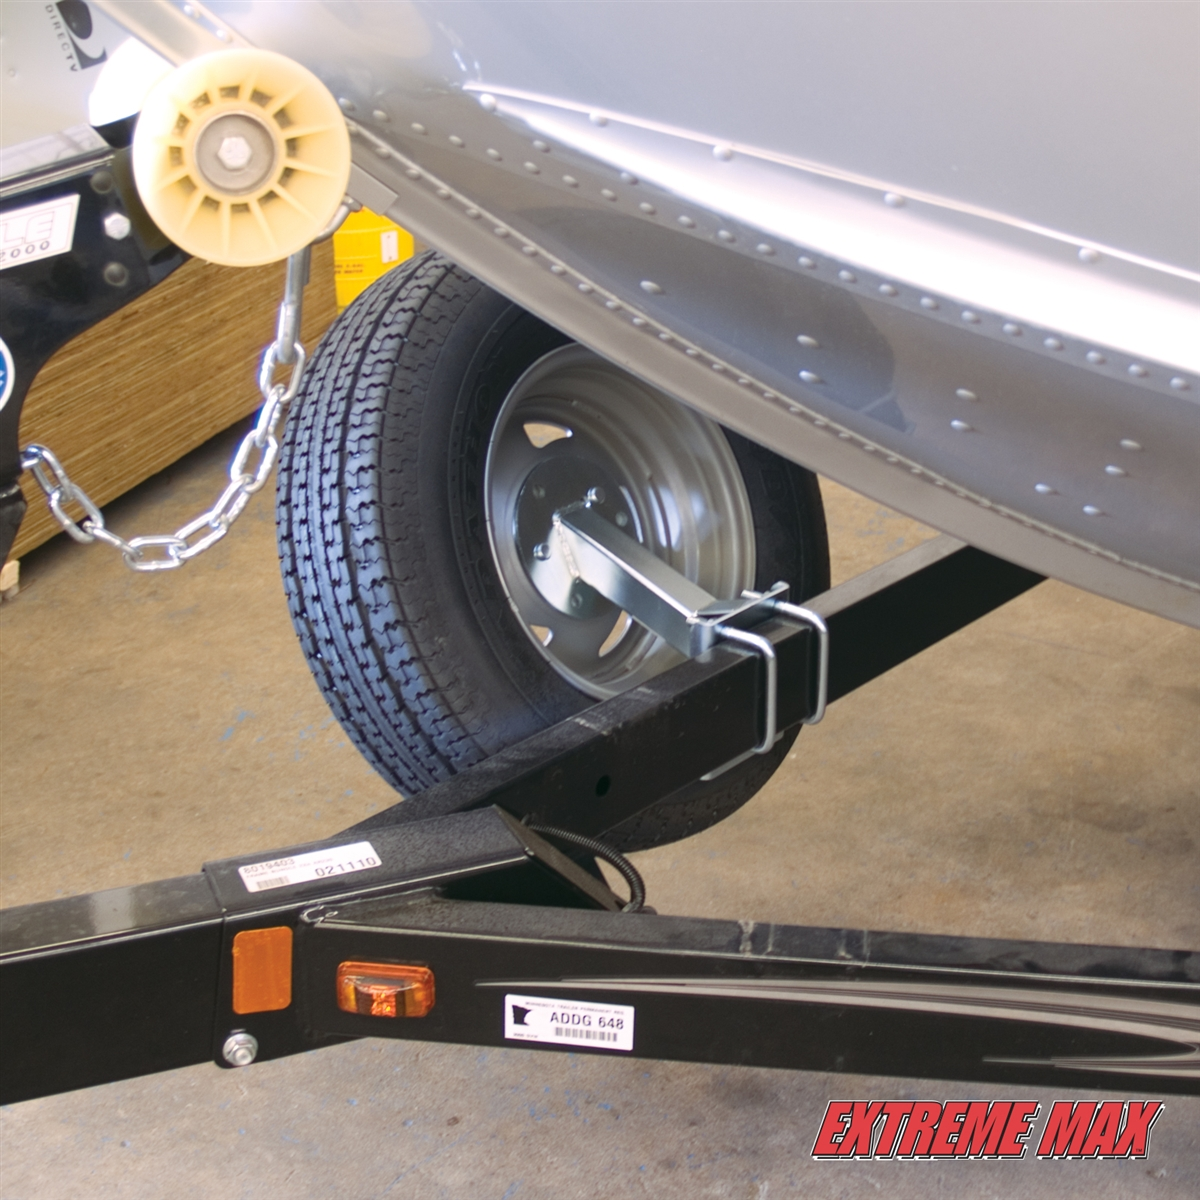 Extreme Max 3001.0064 High-Mount Spare Tire Carrier